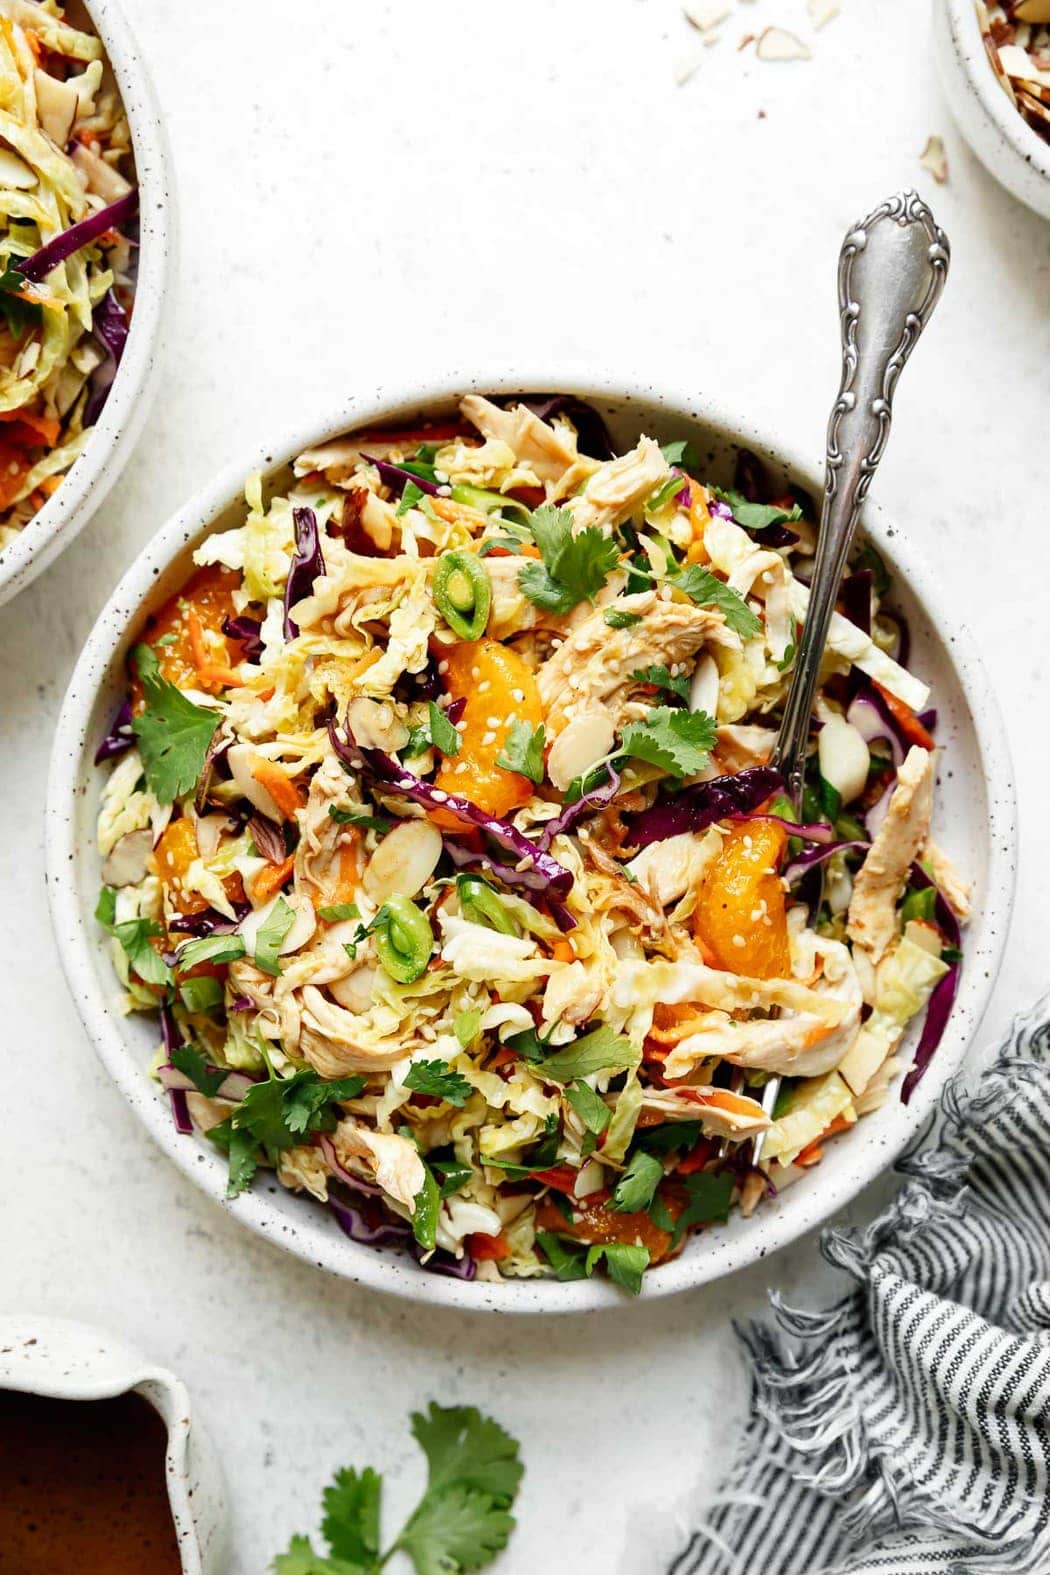 A large bowl filled with Chinese chicken salad topped with sliced snap peas, purple cabbage shreds, sesame seeds, and orange slices.